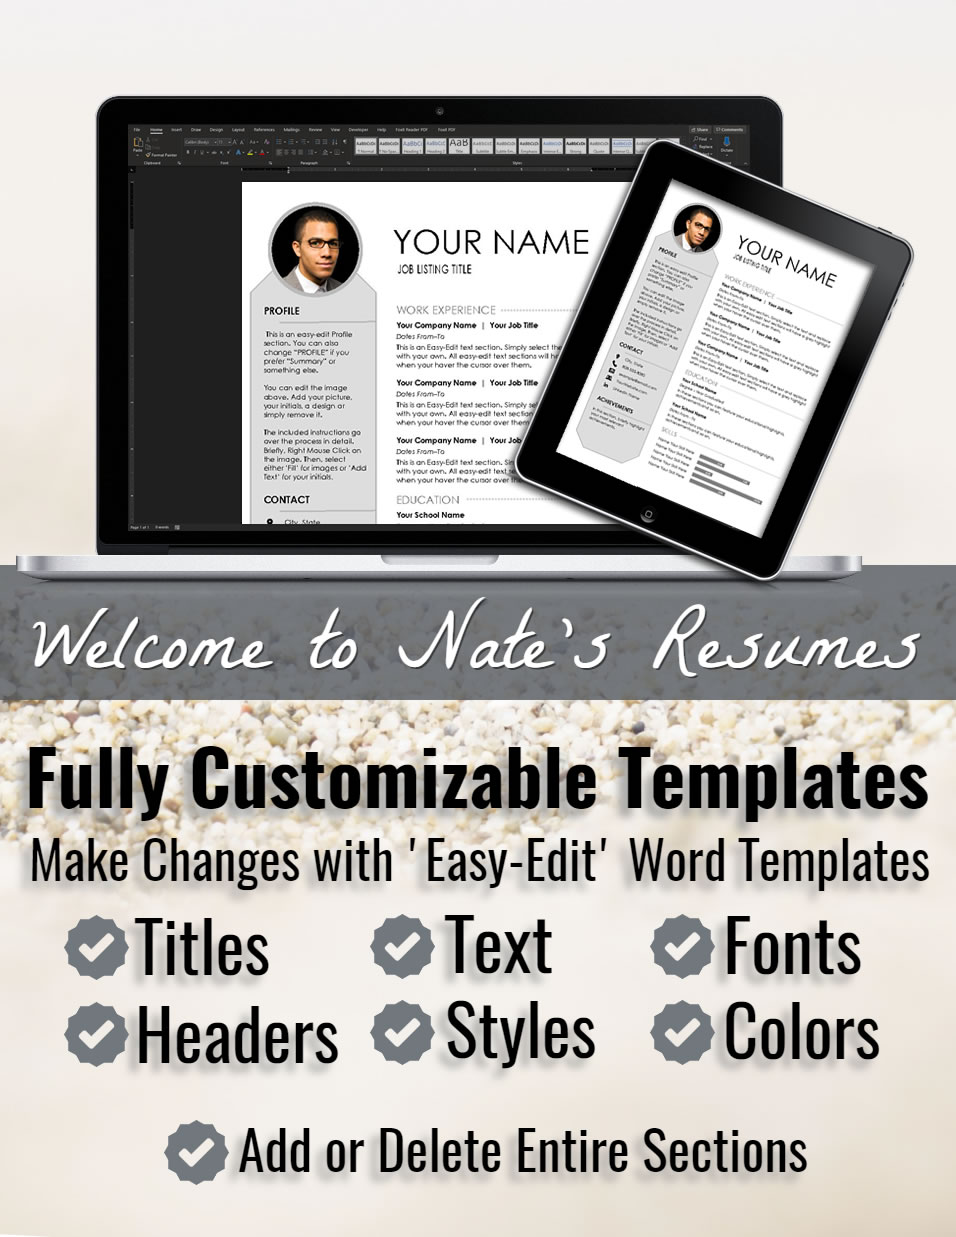 Refined Pro - Make-Easy-Edits-to-Templates-LONG